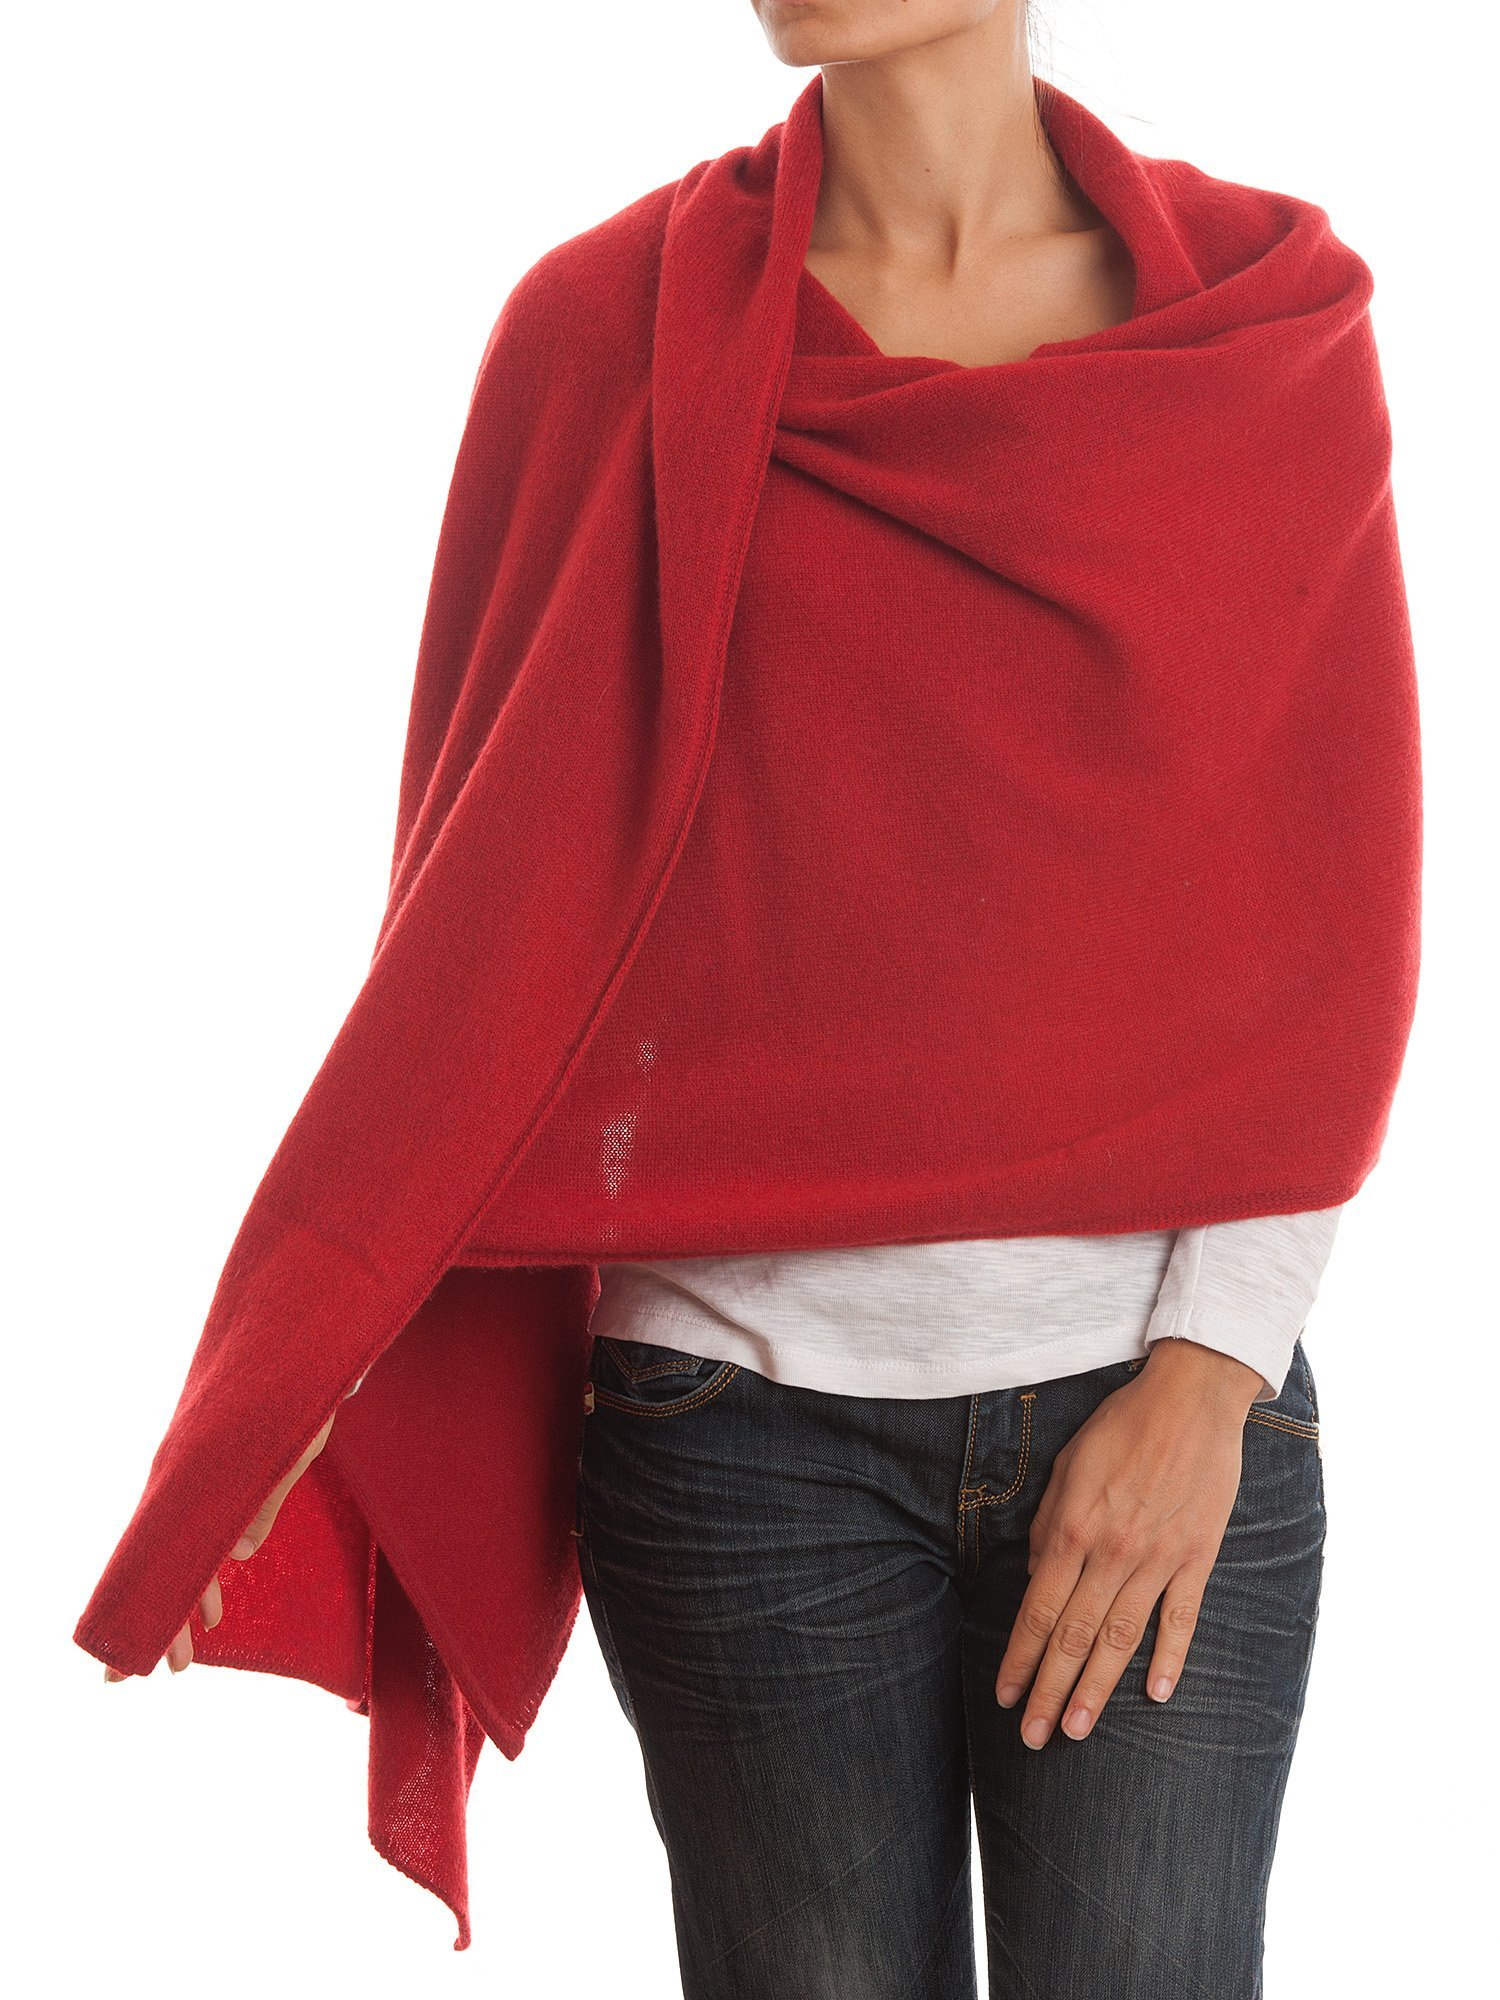 Dalle Piane Cashmere - Stole 100% cashmere - Made in Italy, Color: Red, One size by DALLE PIANE CASHMERE